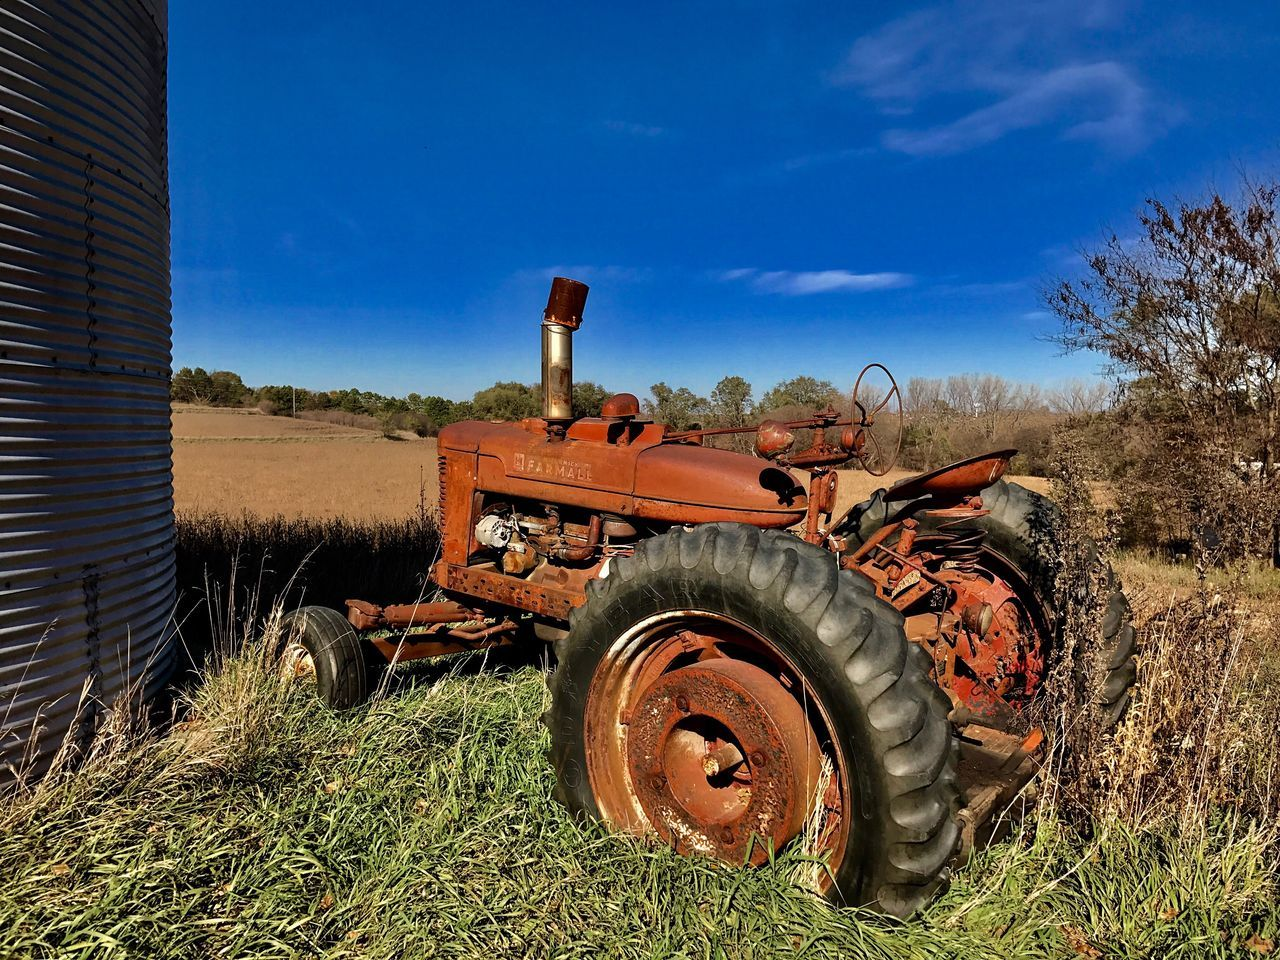 field, agricultural machinery, agriculture, tractor, grass, history, day, rural scene, outdoors, old-fashioned, land vehicle, antique, no people, nature, sky, abandoned, sunlight, transportation, combine harvester, stationary, landscape, tree